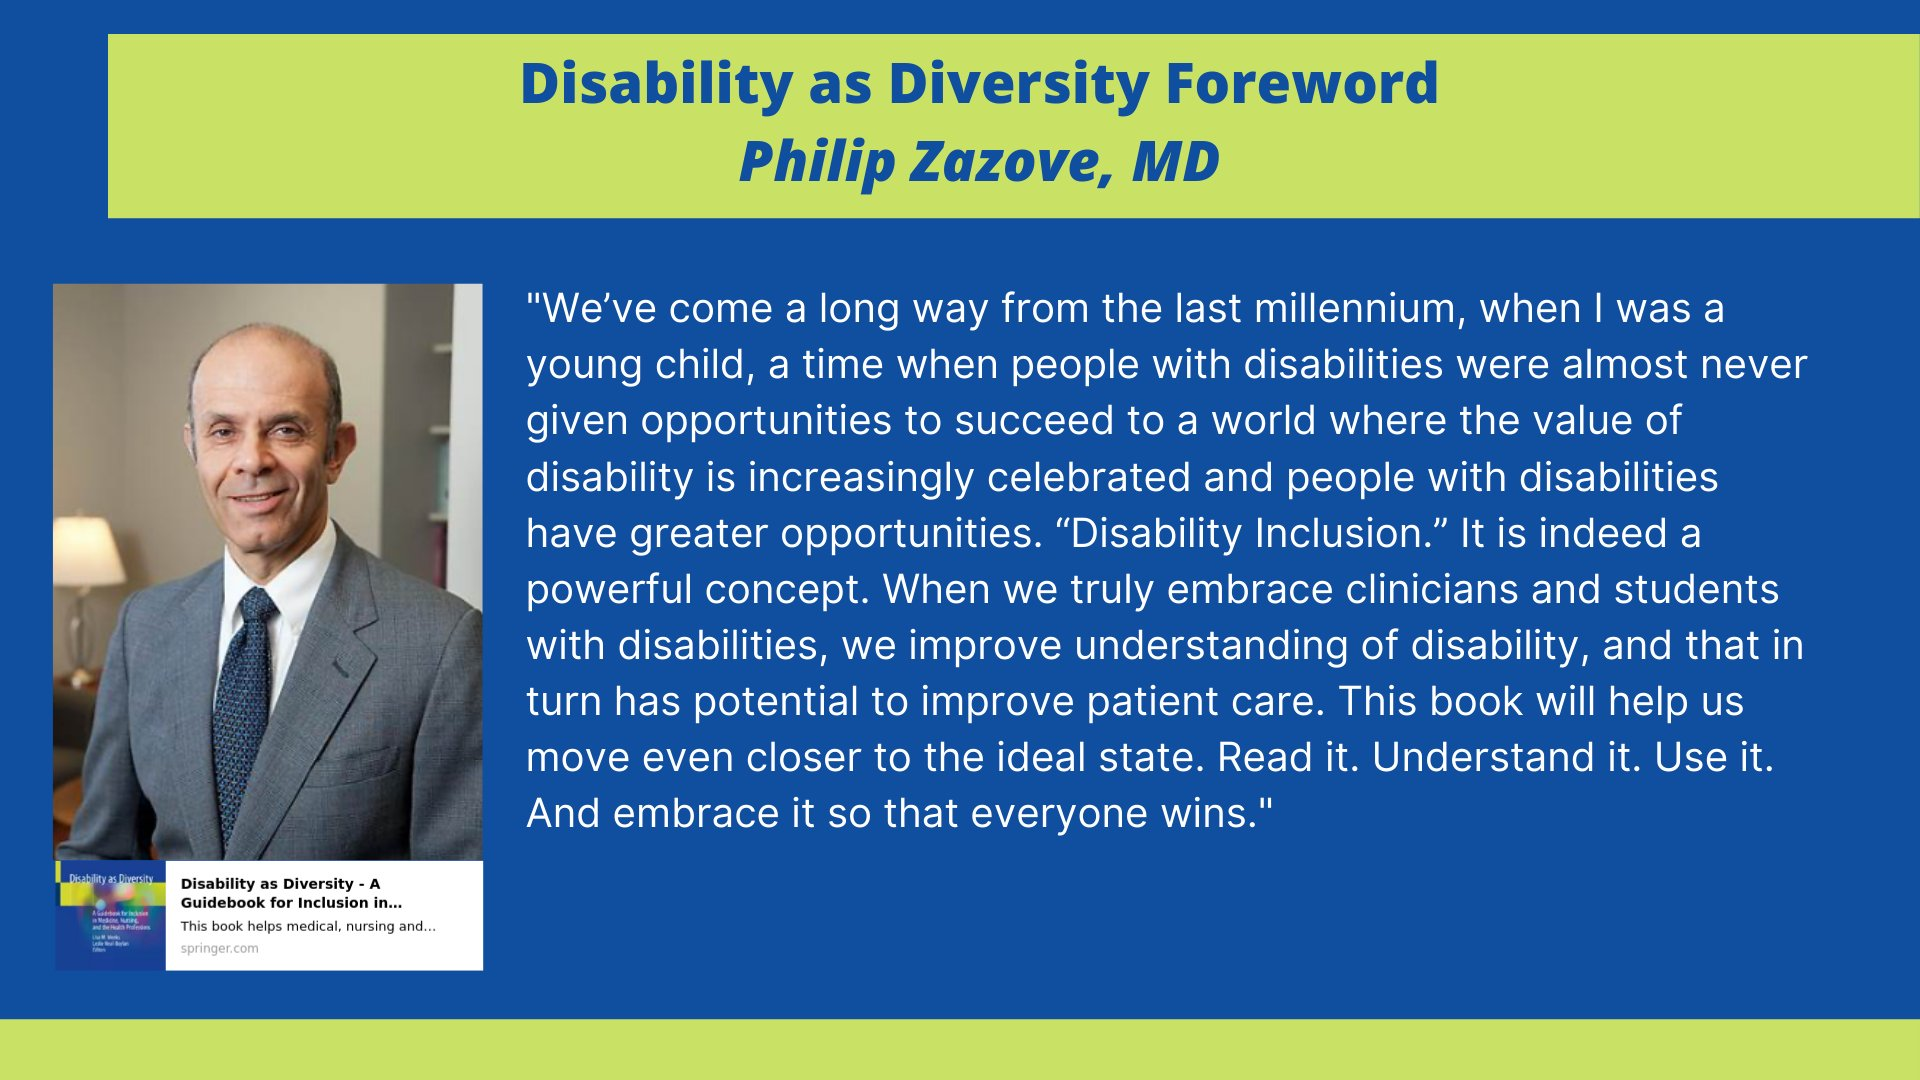 Disability as Diversity forward form Philip Zazove, MD: We've come a long way from the last millennium, when I was a young child, a time when people with disabilities were almost never given opportunities to succeed to a world where the value of disabilit